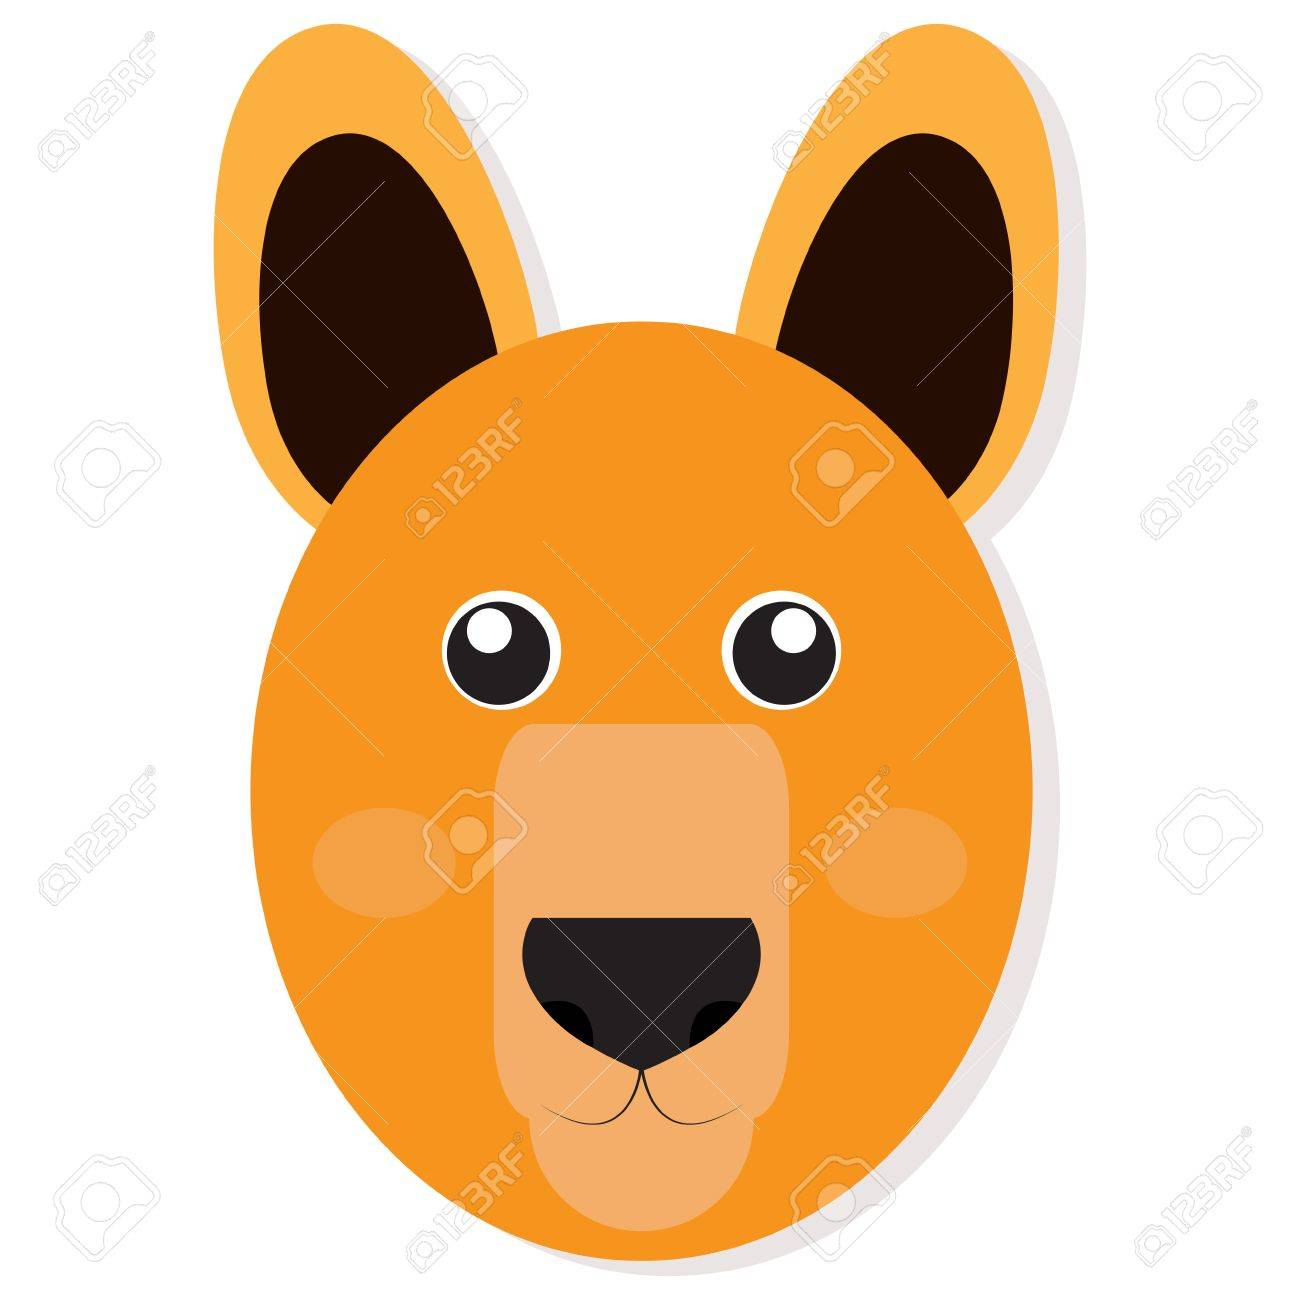 Isolated cute kangaroo face on a white background, Vector illustration.